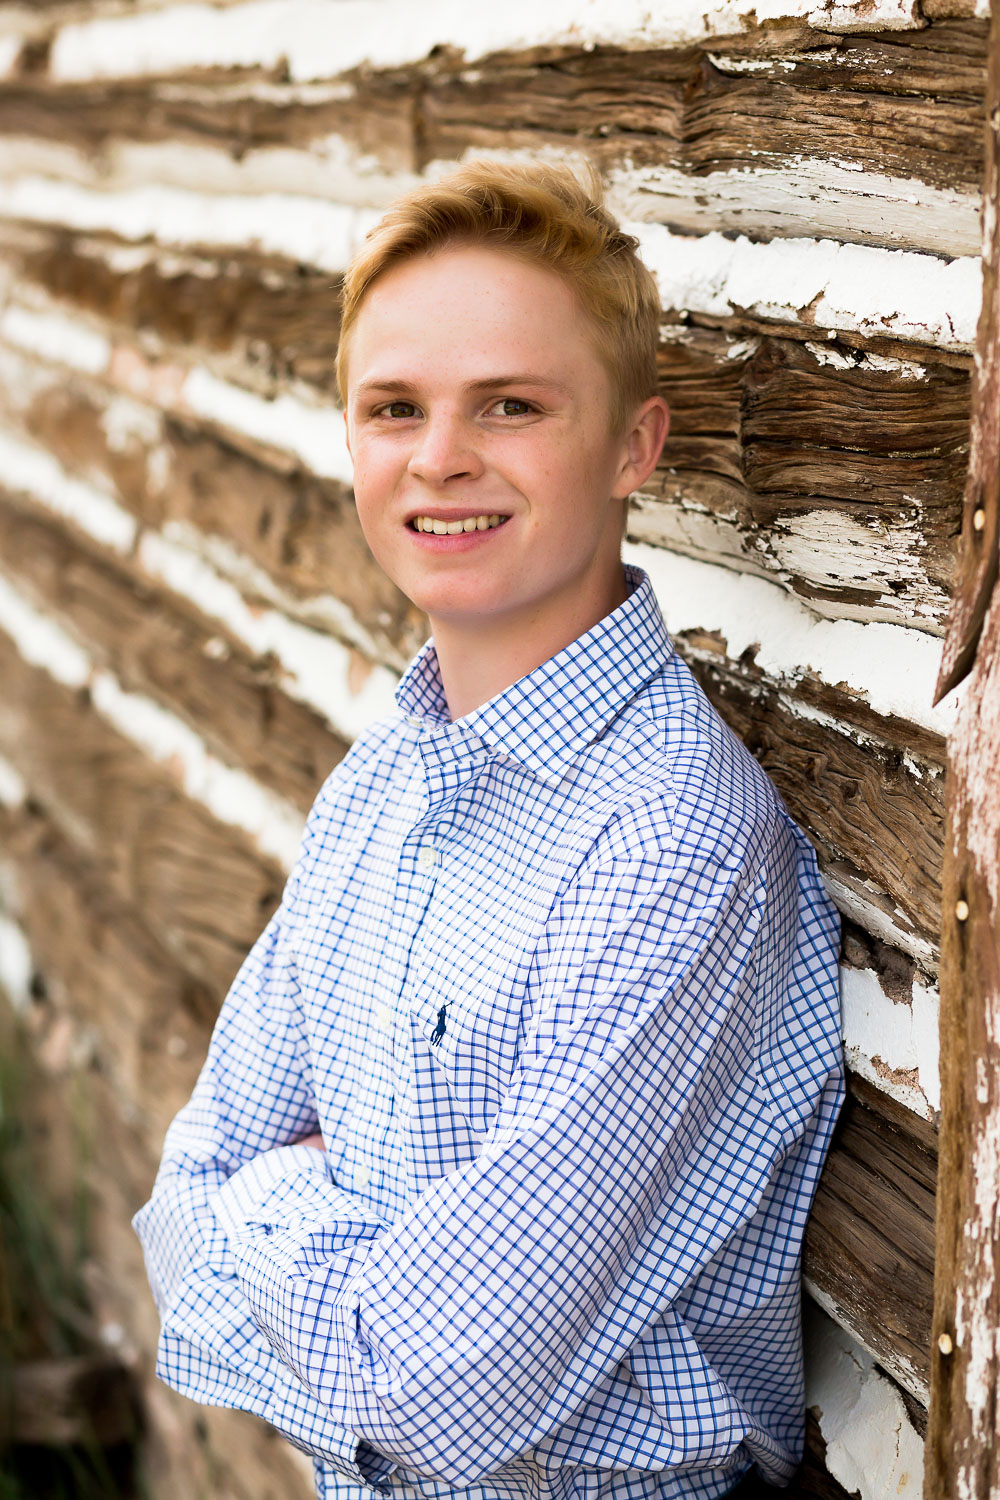 denver_senior_portrait_photographer_kathleen_bracken_photography-7.jpg